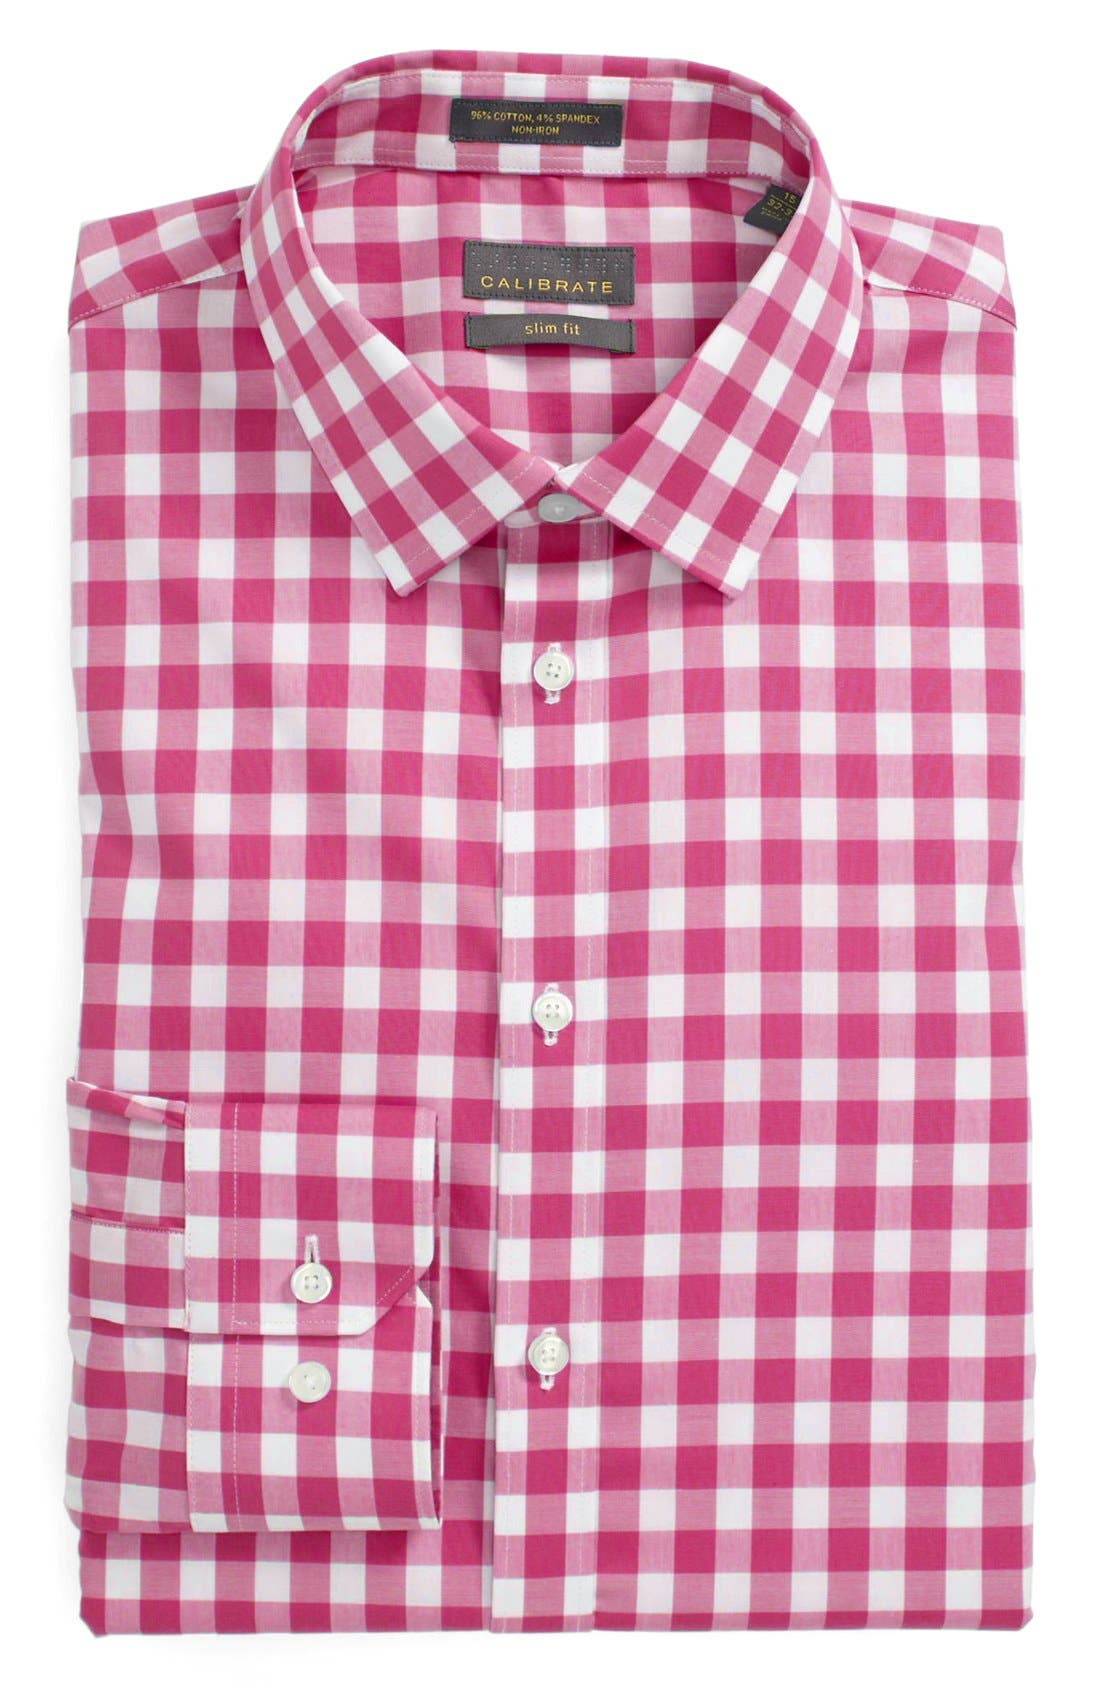 Main Image - Calibrate Slim Fit Non Iron Gingham Dress Shirt